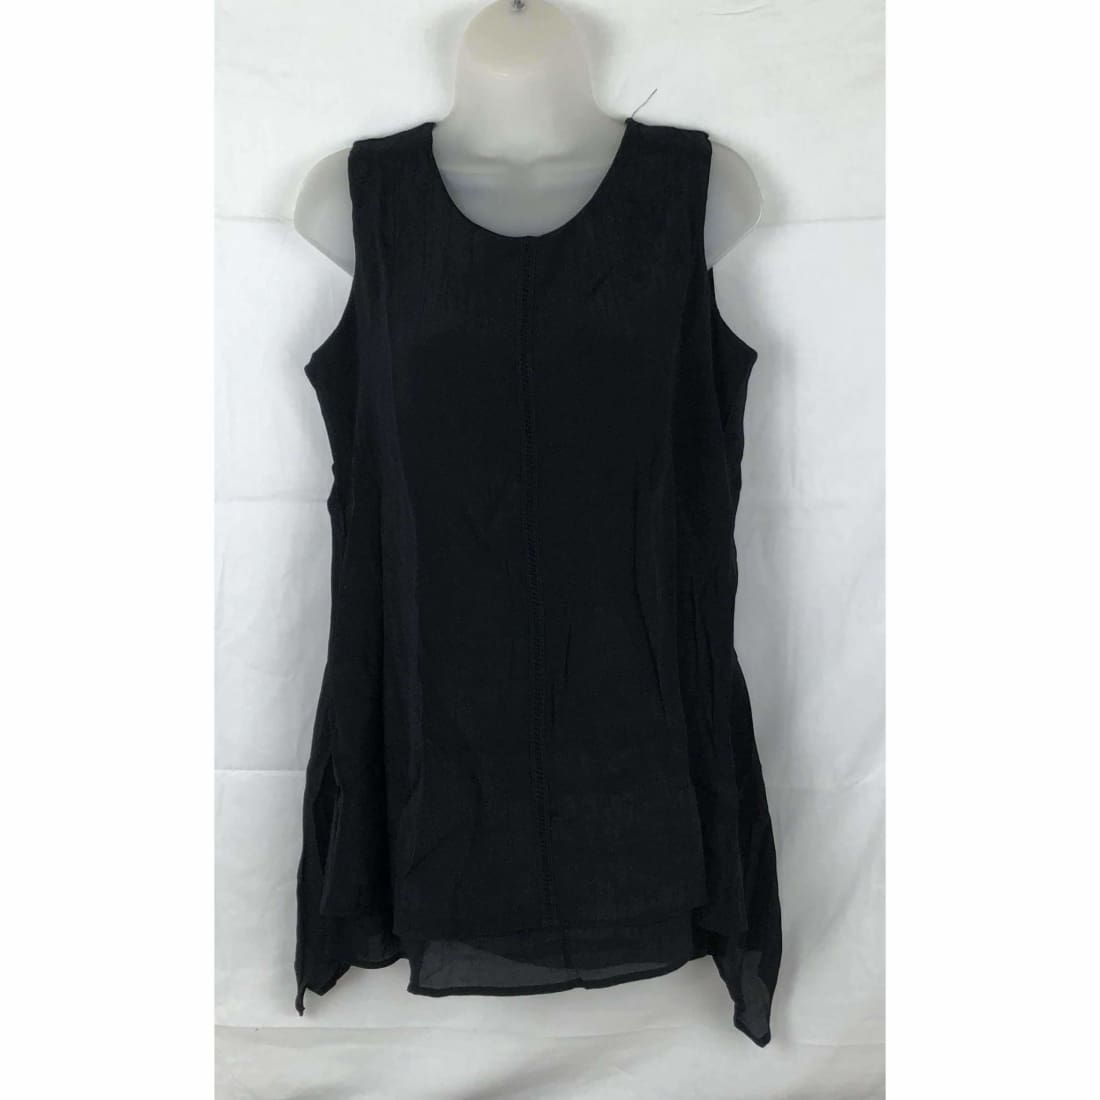 Fever Womens Lightweight Double Layer Woven Sleeveless Blouse M / Black Tops & Blouses